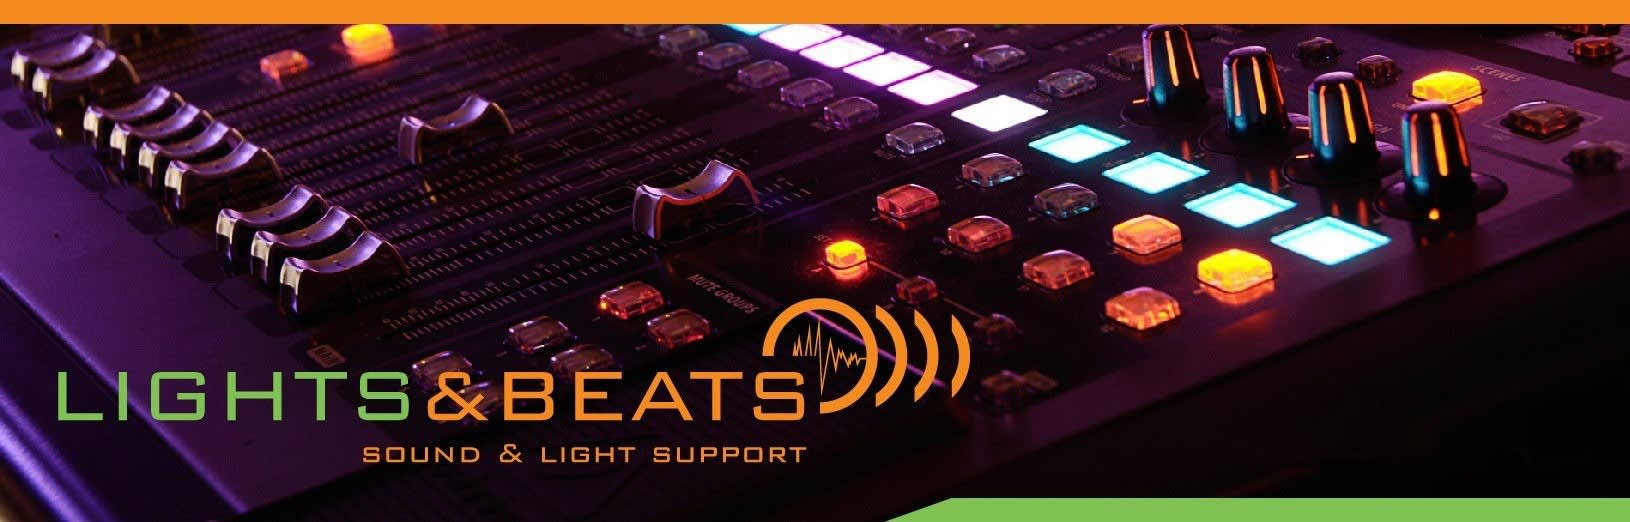 Lights & Beats